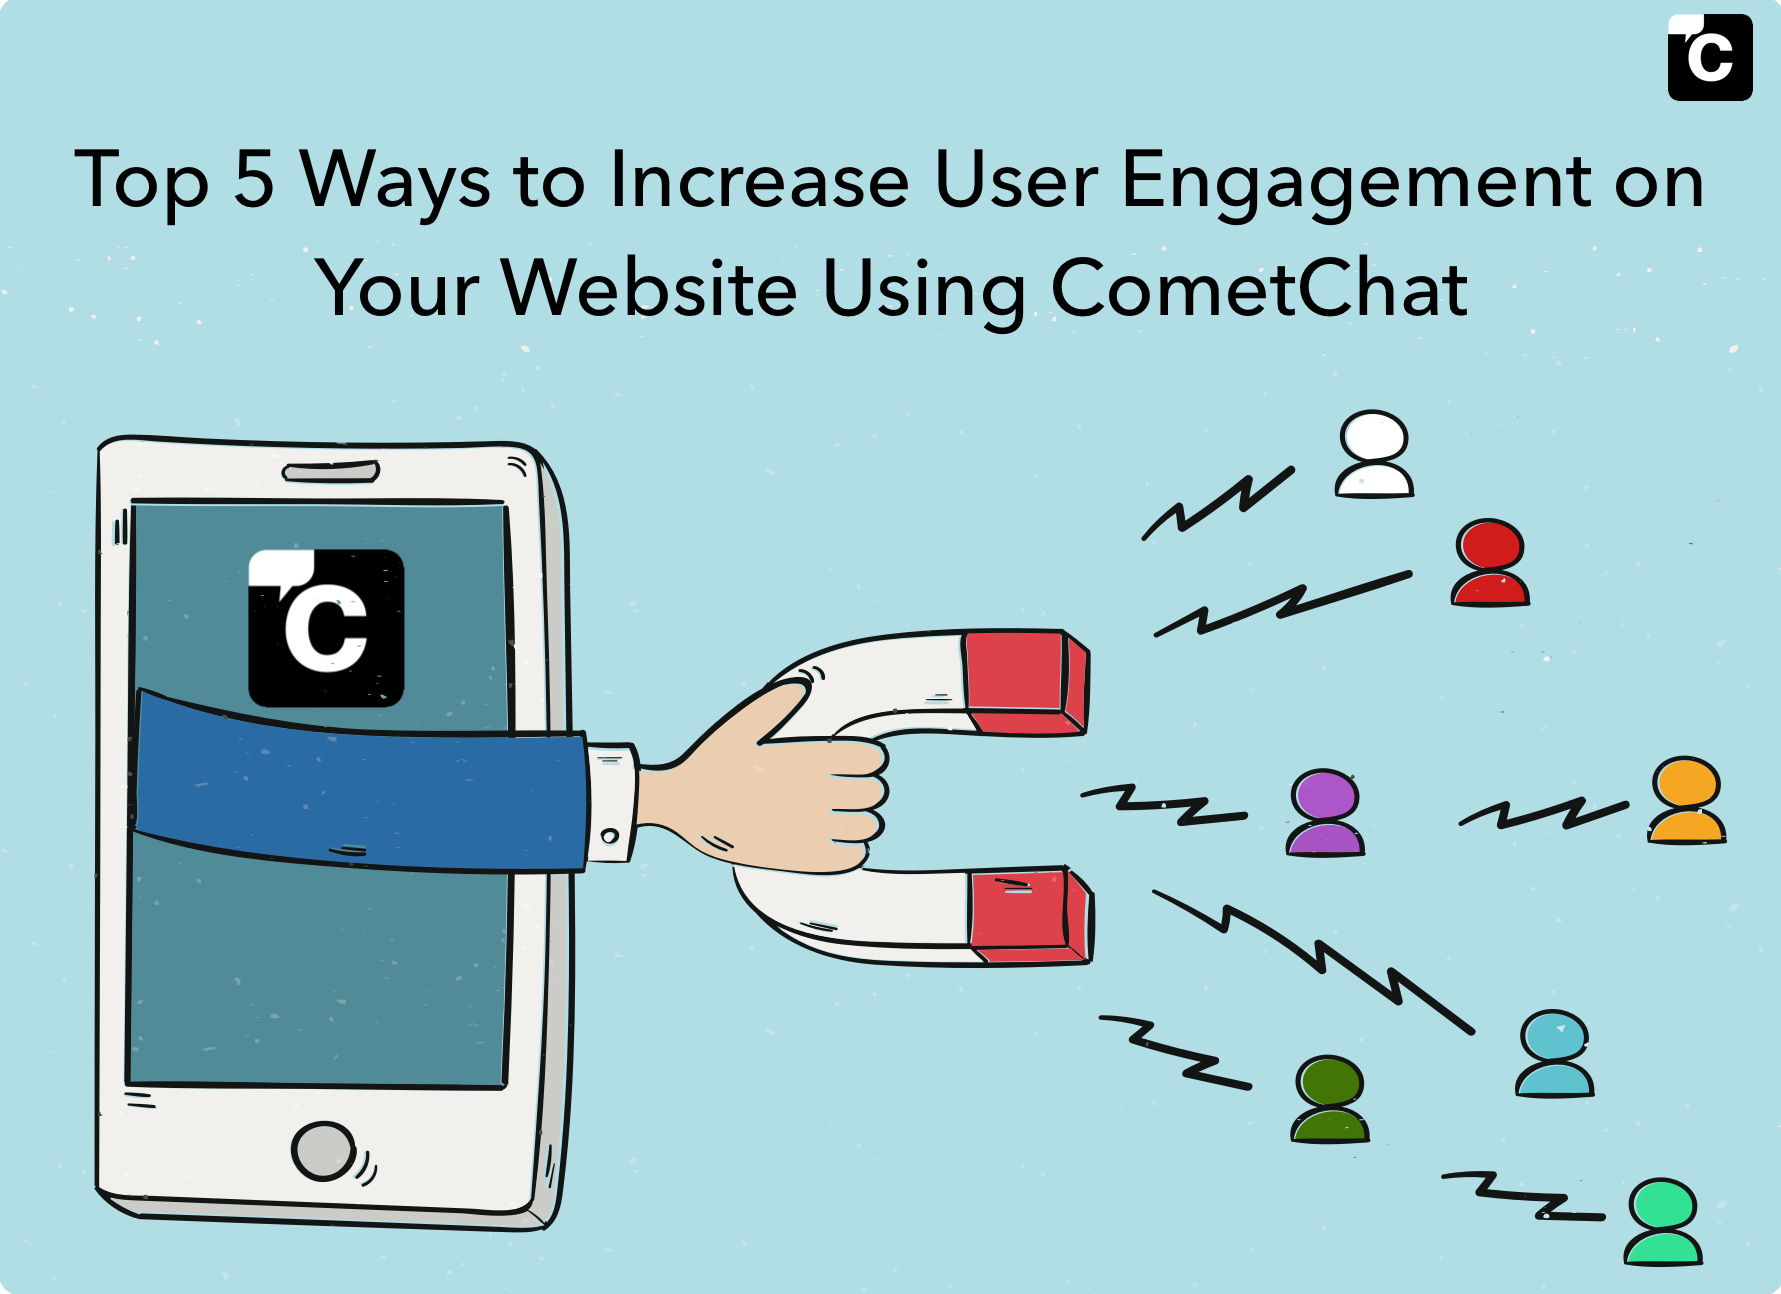 Top 5 Ways to Increase User Engagement on Your Website Using CometChat